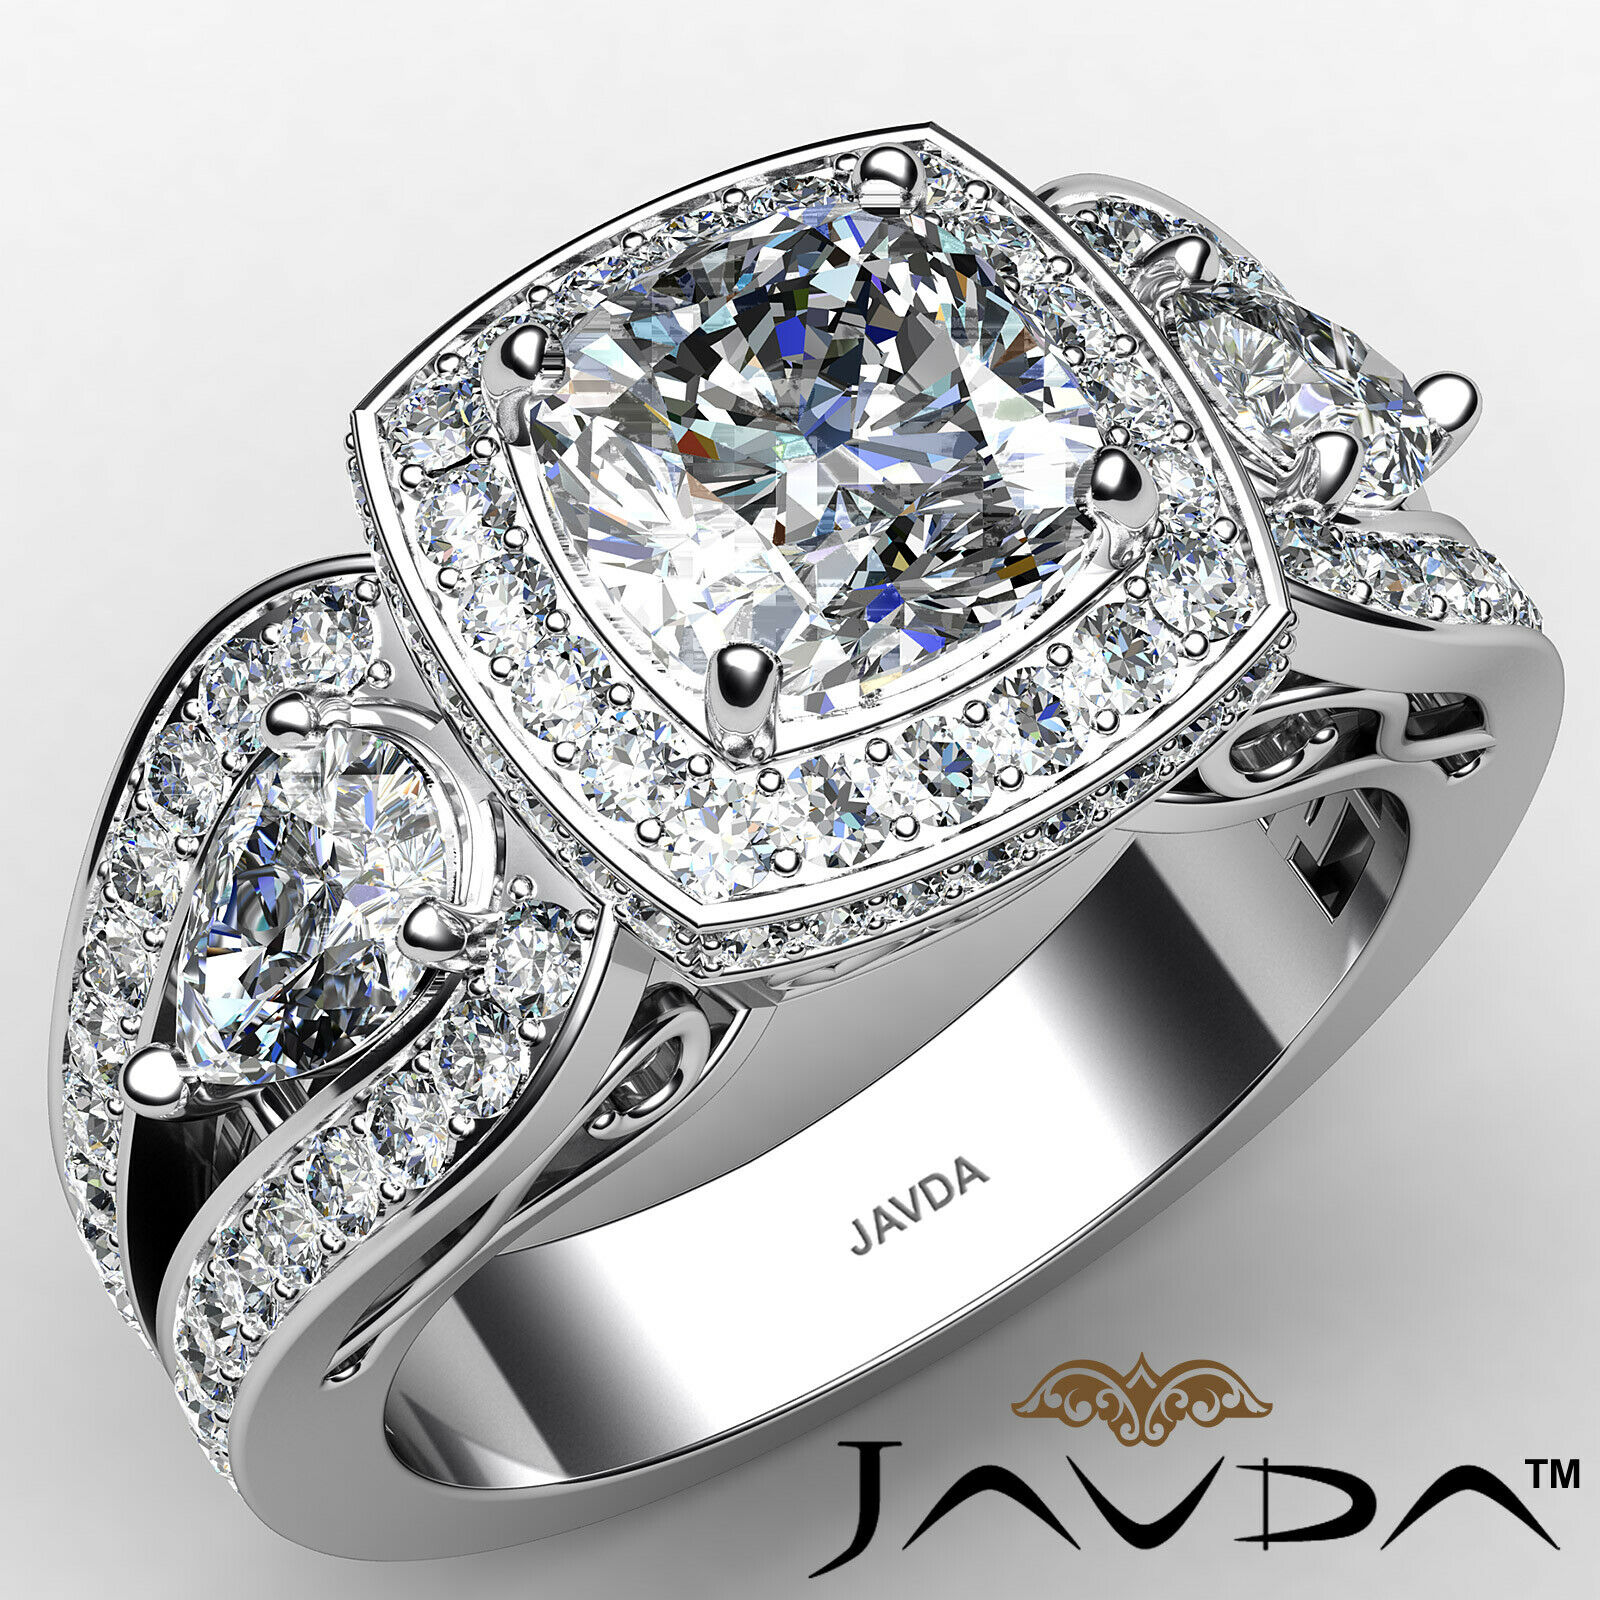 Cushion Diamond Engagement Ring Certified by GIA, I Color & VVS2 clarity 2.76ctw